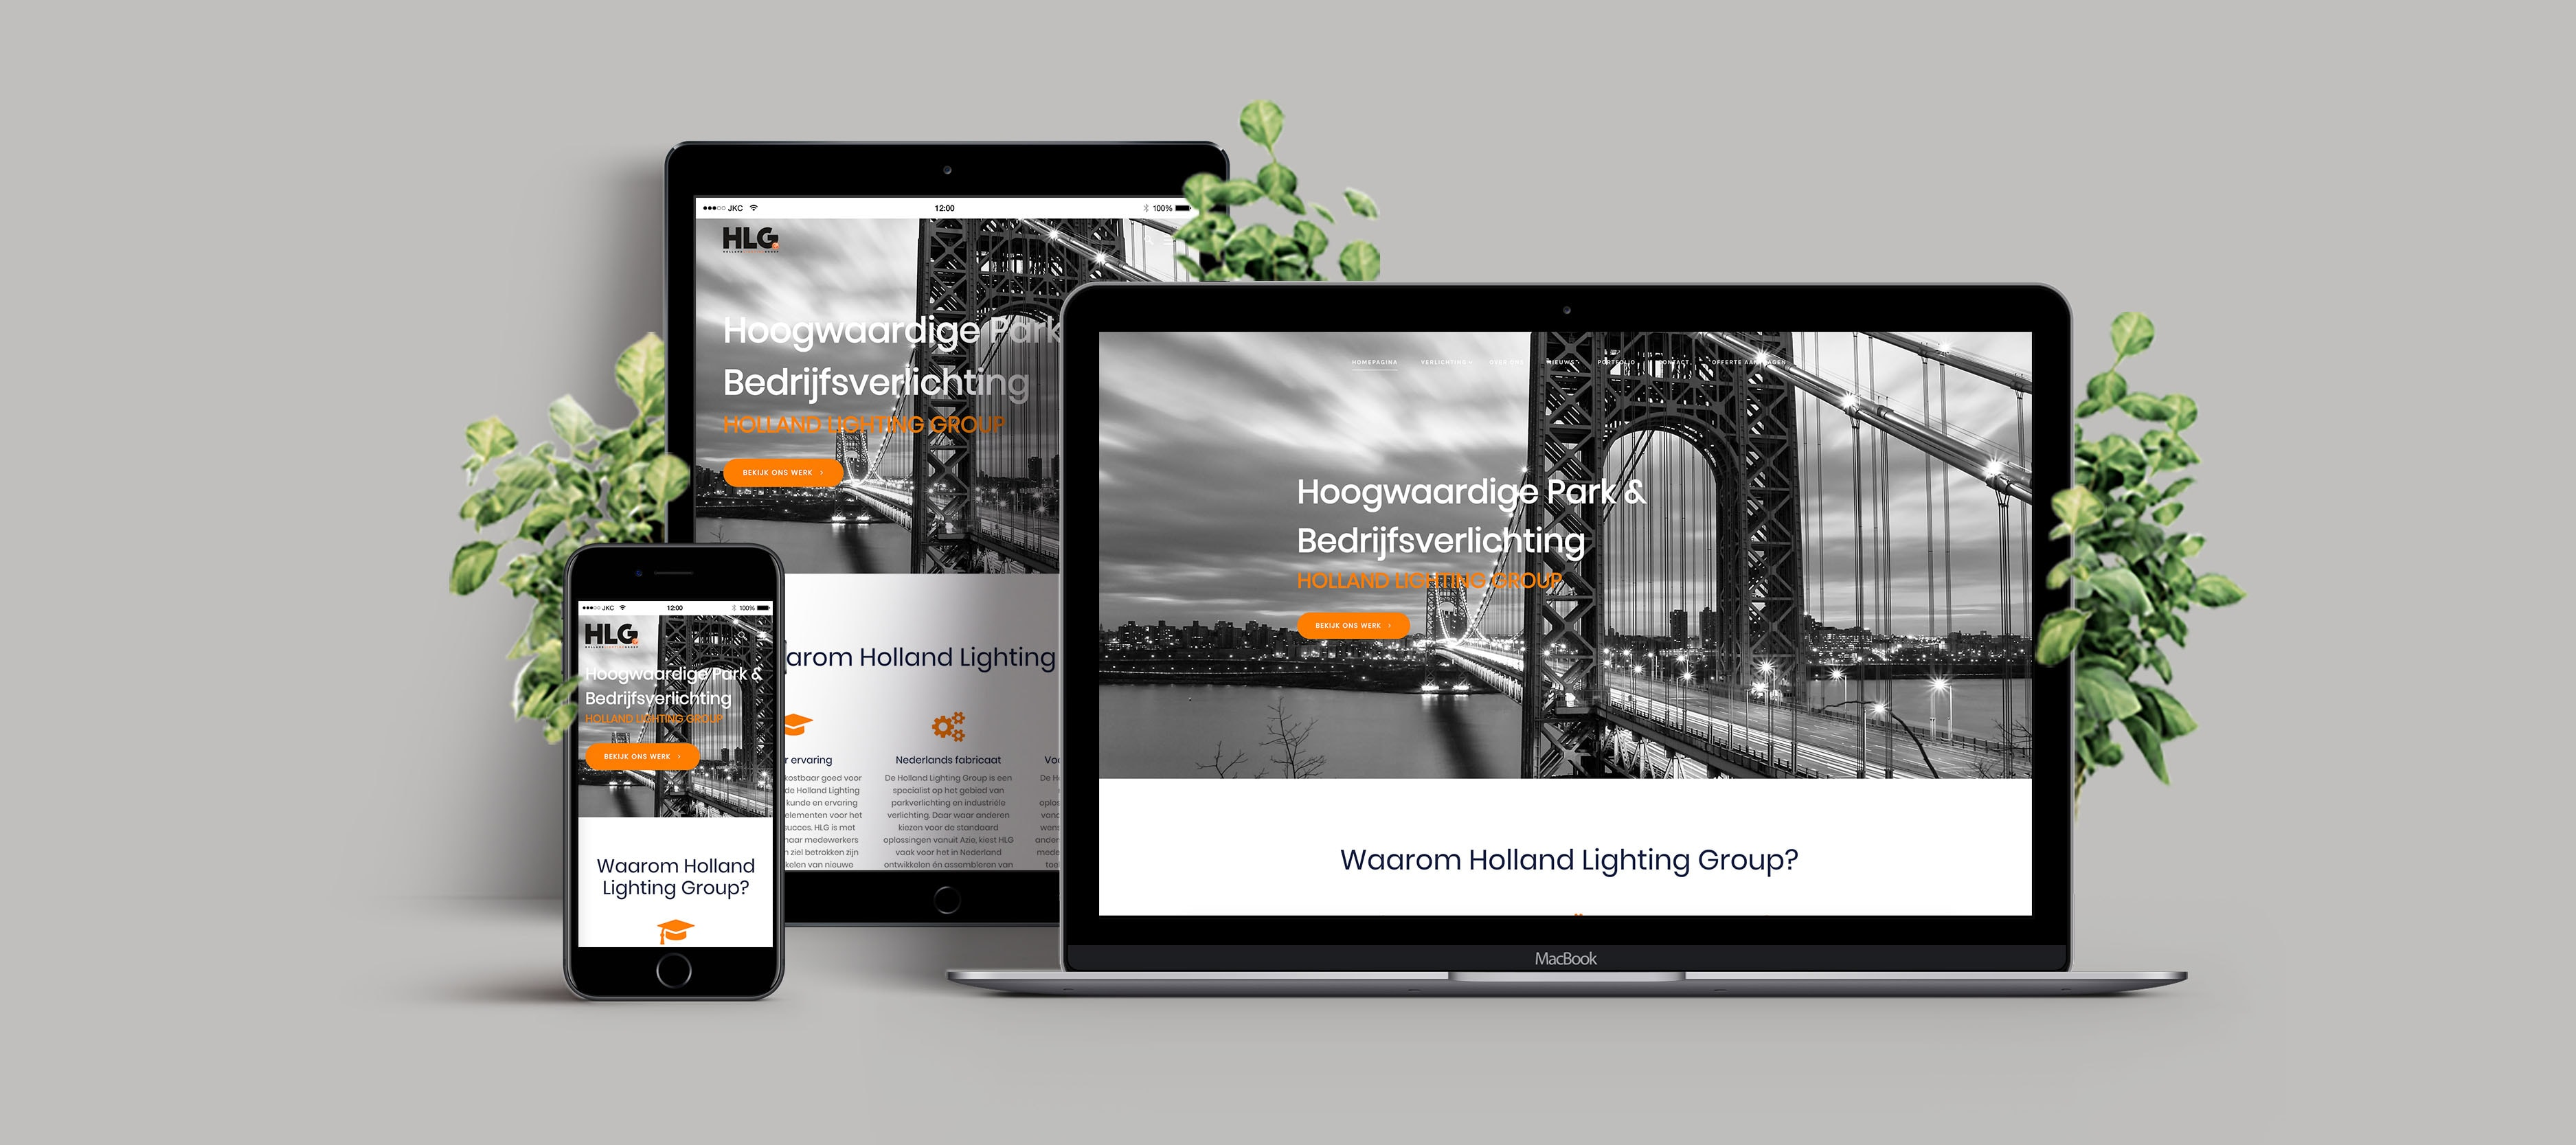 Bekijk de case over de nieuwe website voor Holland Lighting Group B.V. - WordPress website ontwikkeling en webhosting - JKC Media B.V.